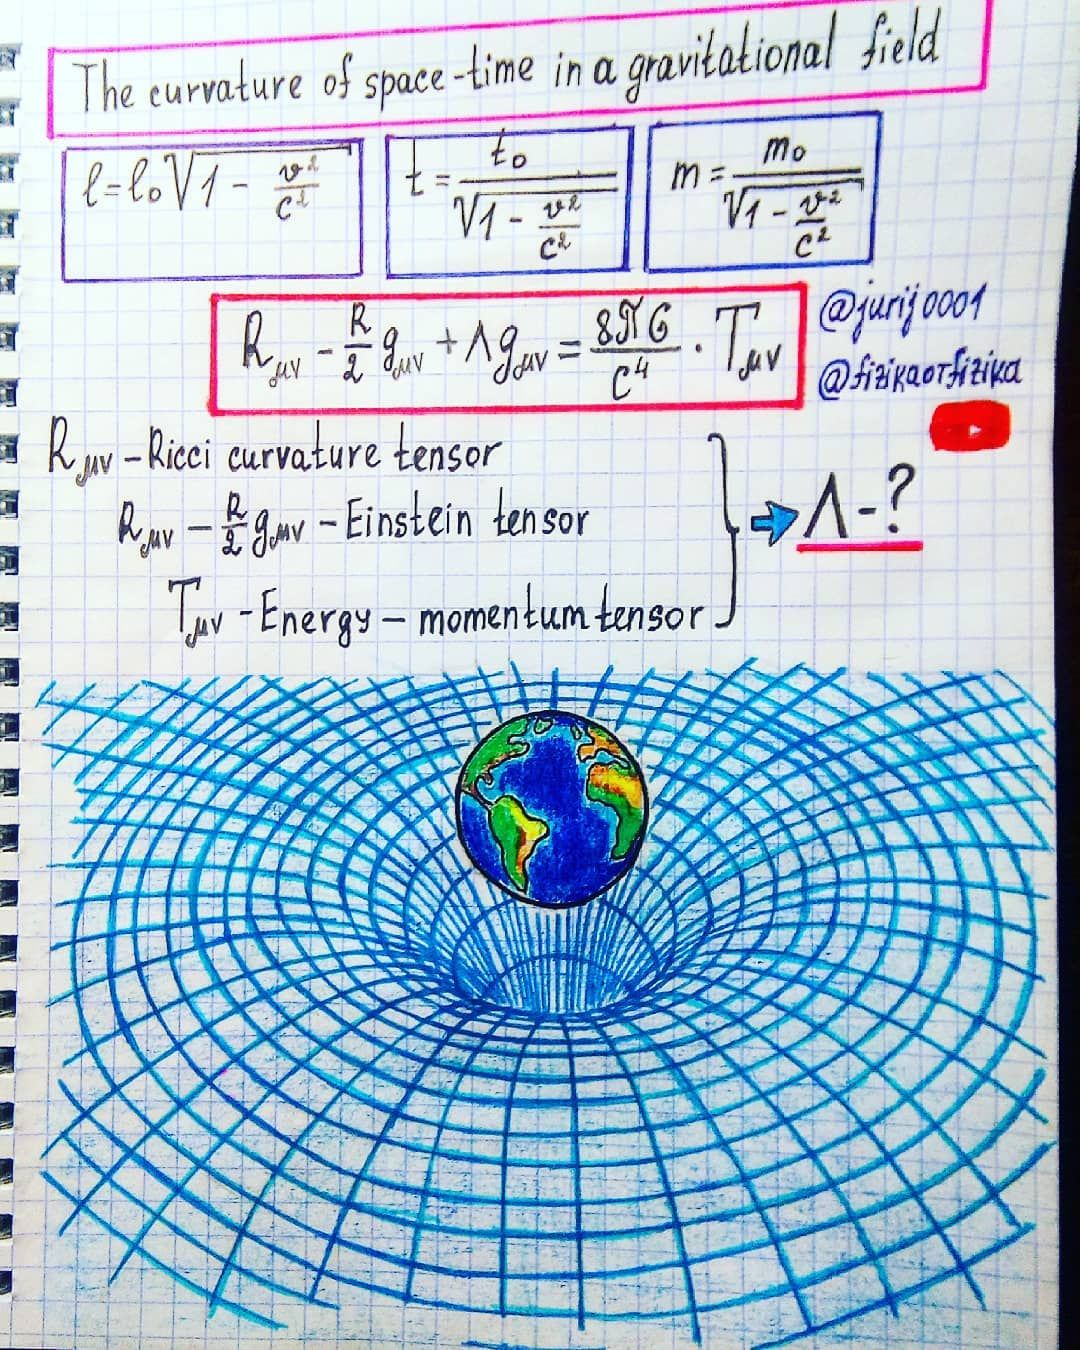 The Curvature Of Space Time Gravitational Effects Are Not Due To The Force Interaction Of Bodies And Physics And Mathematics Physics Concepts Learn Physics